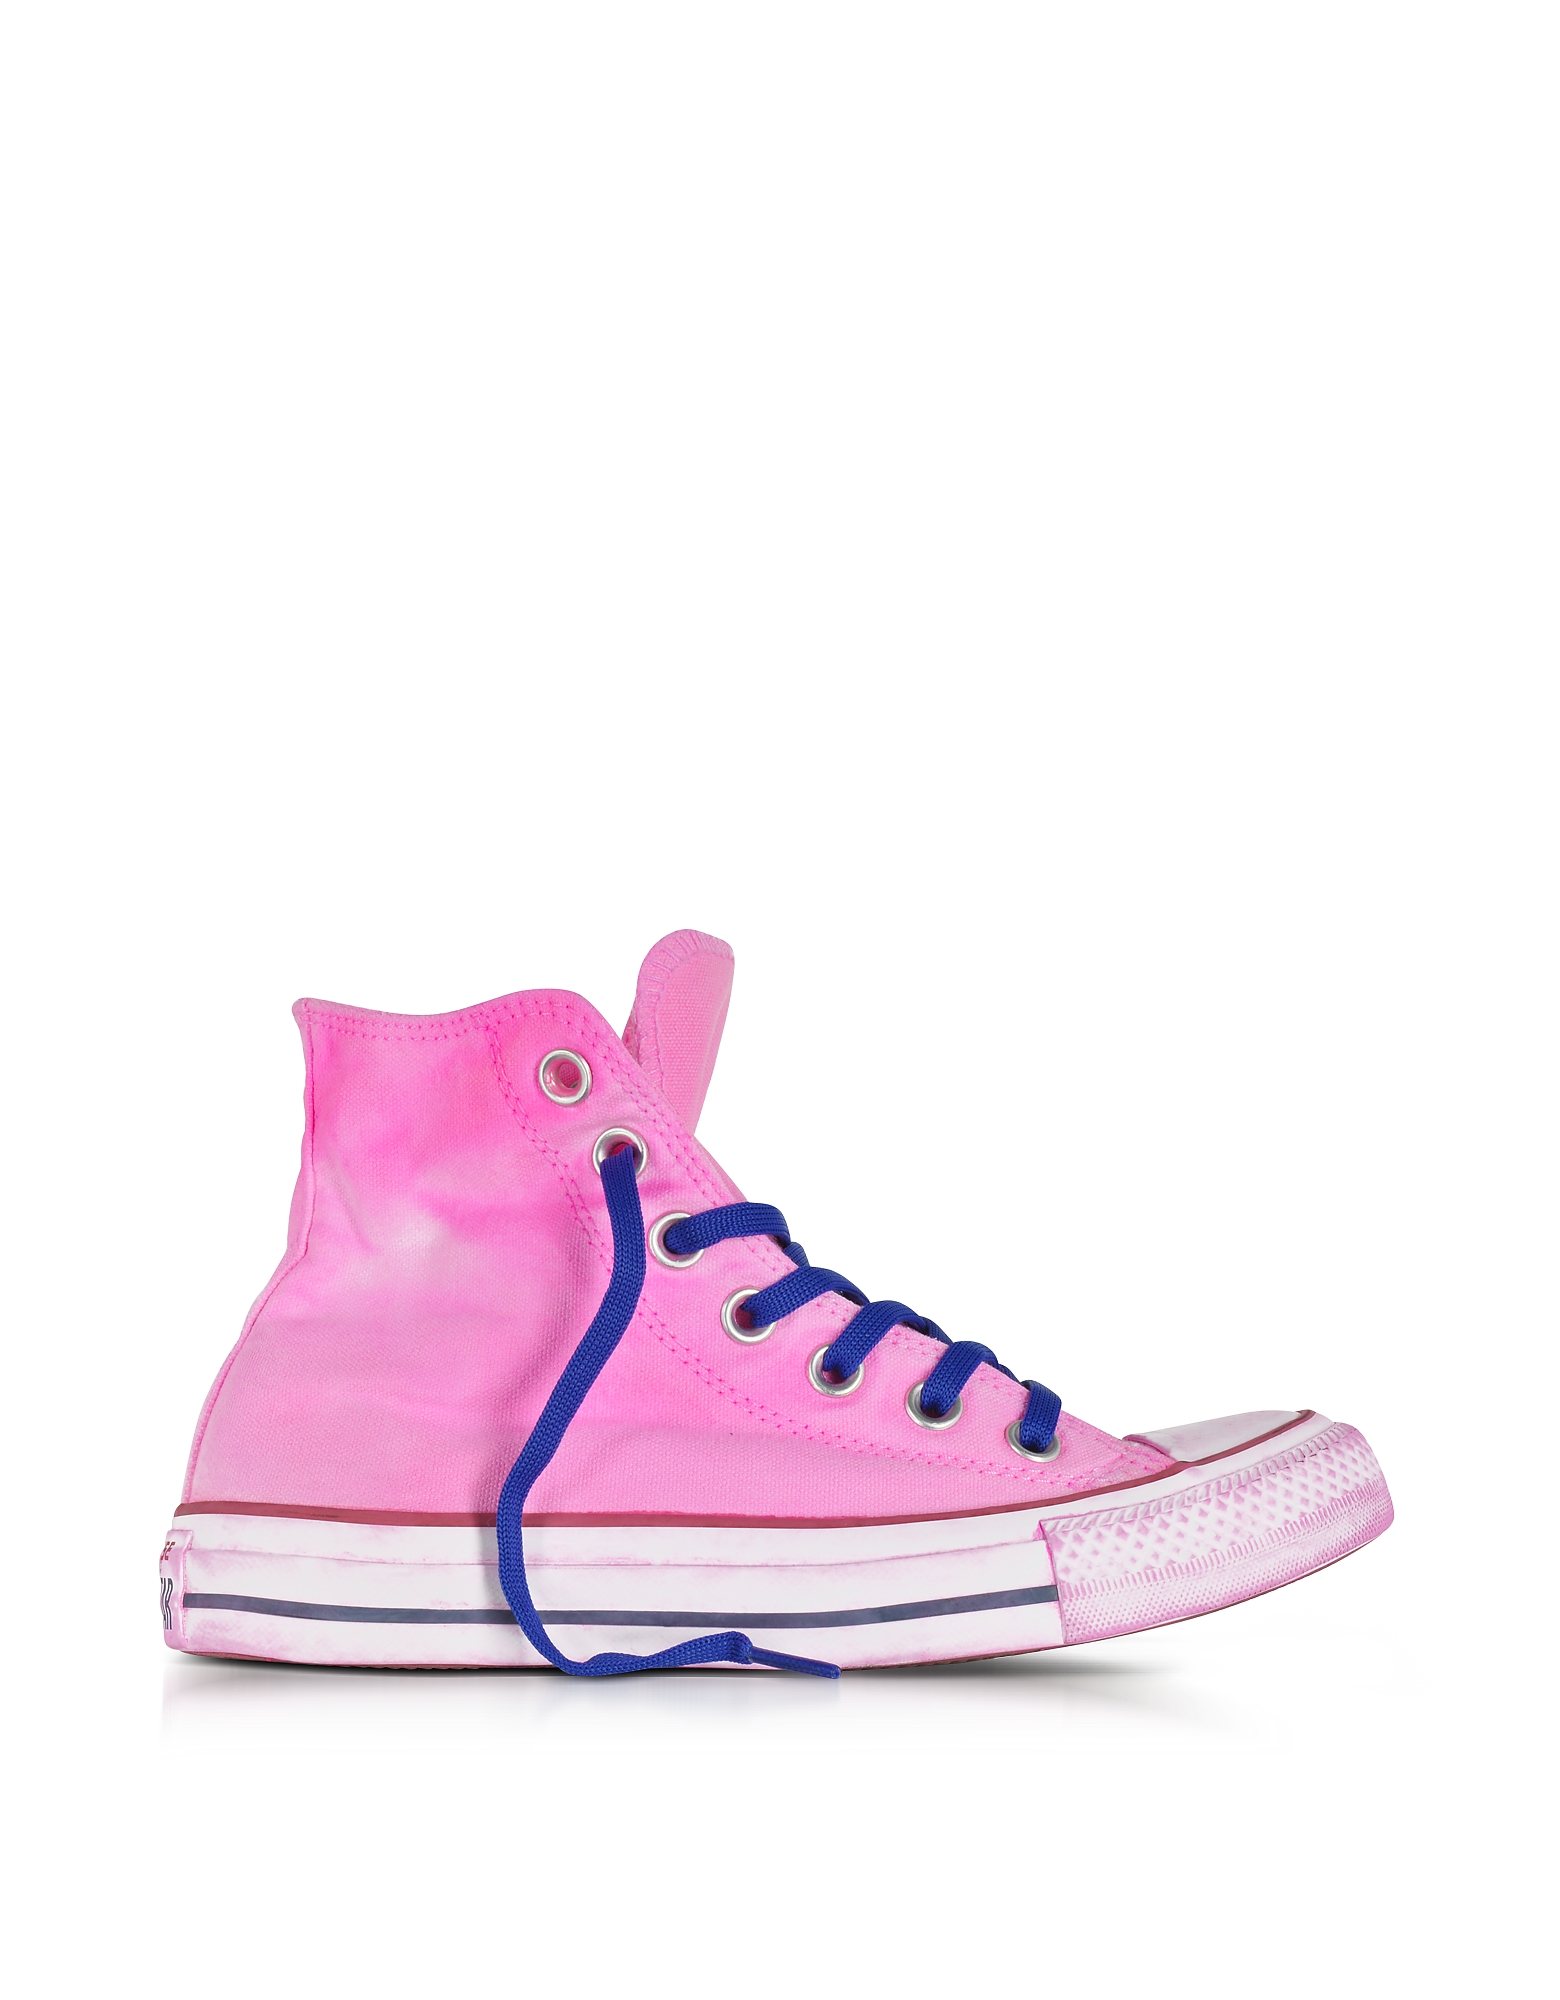 Converse Limited Edition Shoes, Chuck Taylor All Star Hi Neon Fuchsia Canvas LTD Sneakers